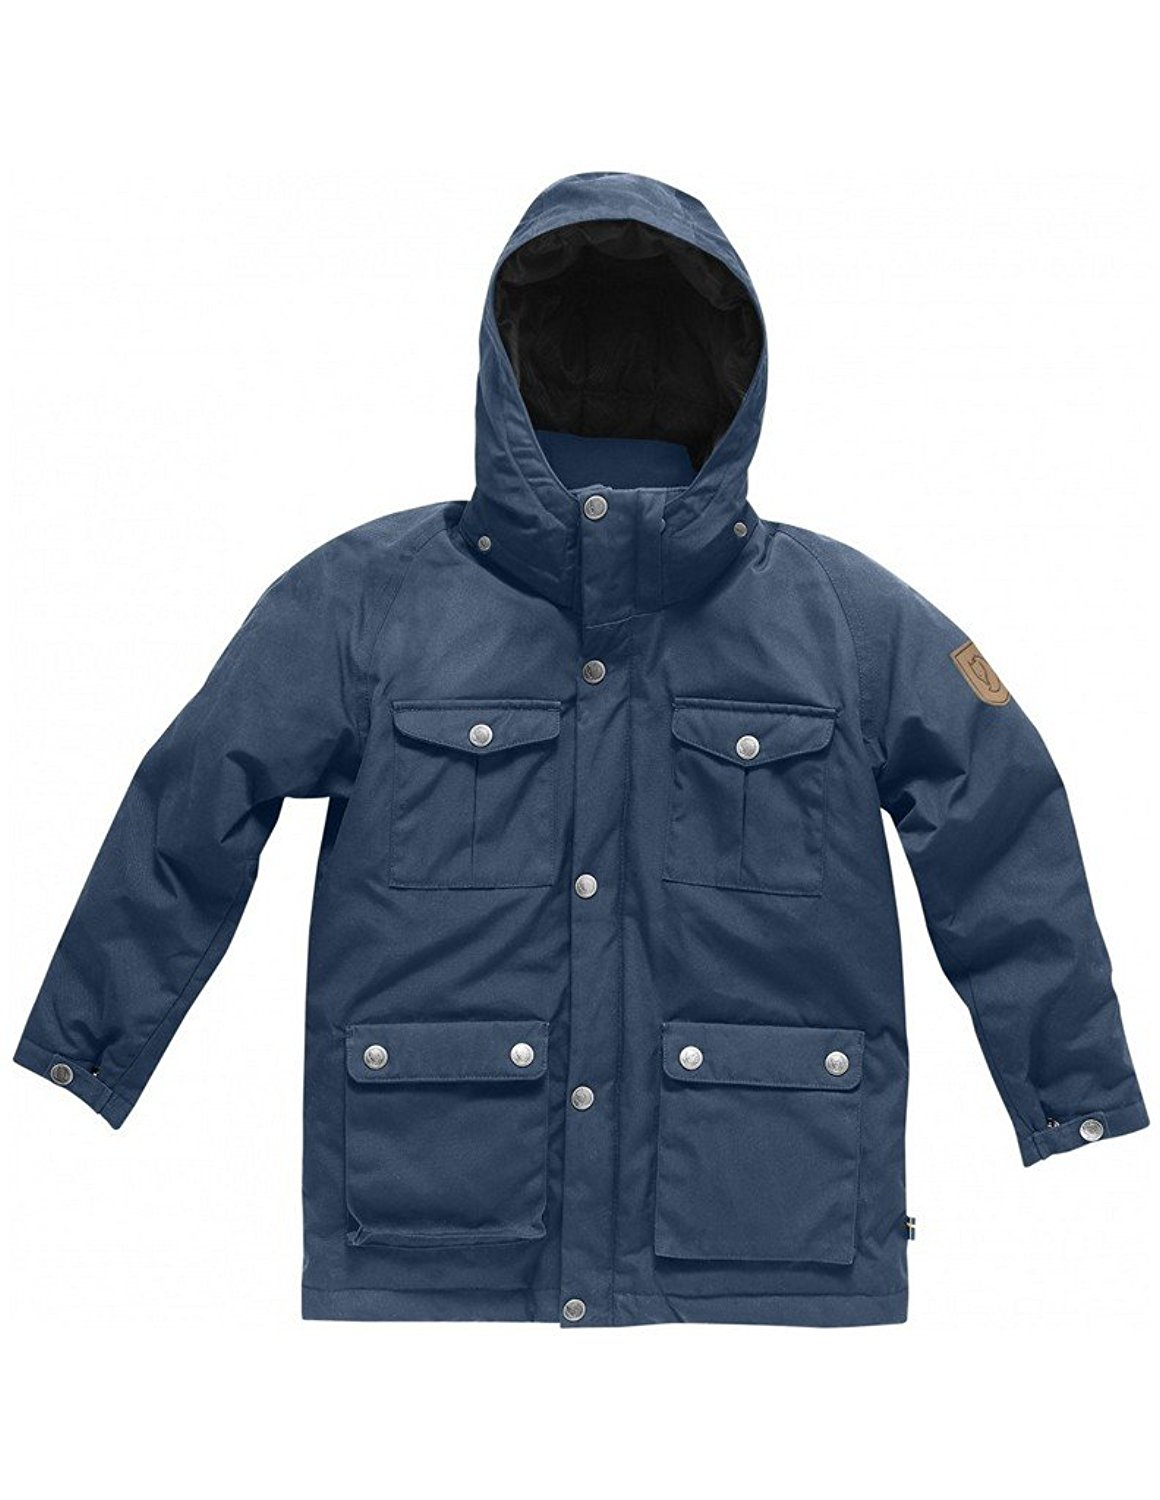 d847a178856 Buy Fjallraven Womens Kyla Parka in Cheap Price on Alibaba.com